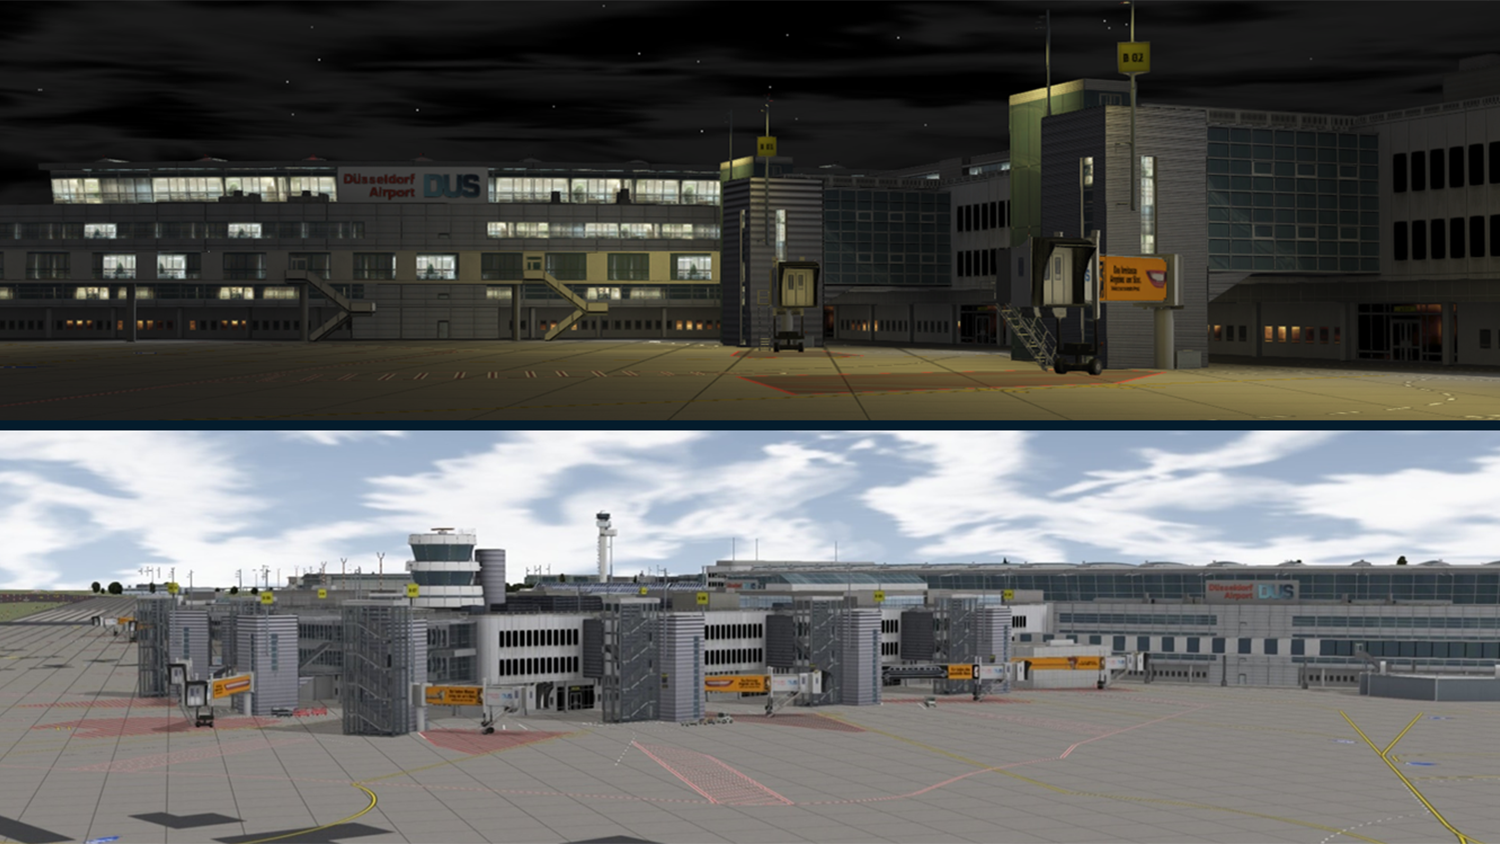 Simulating your airport